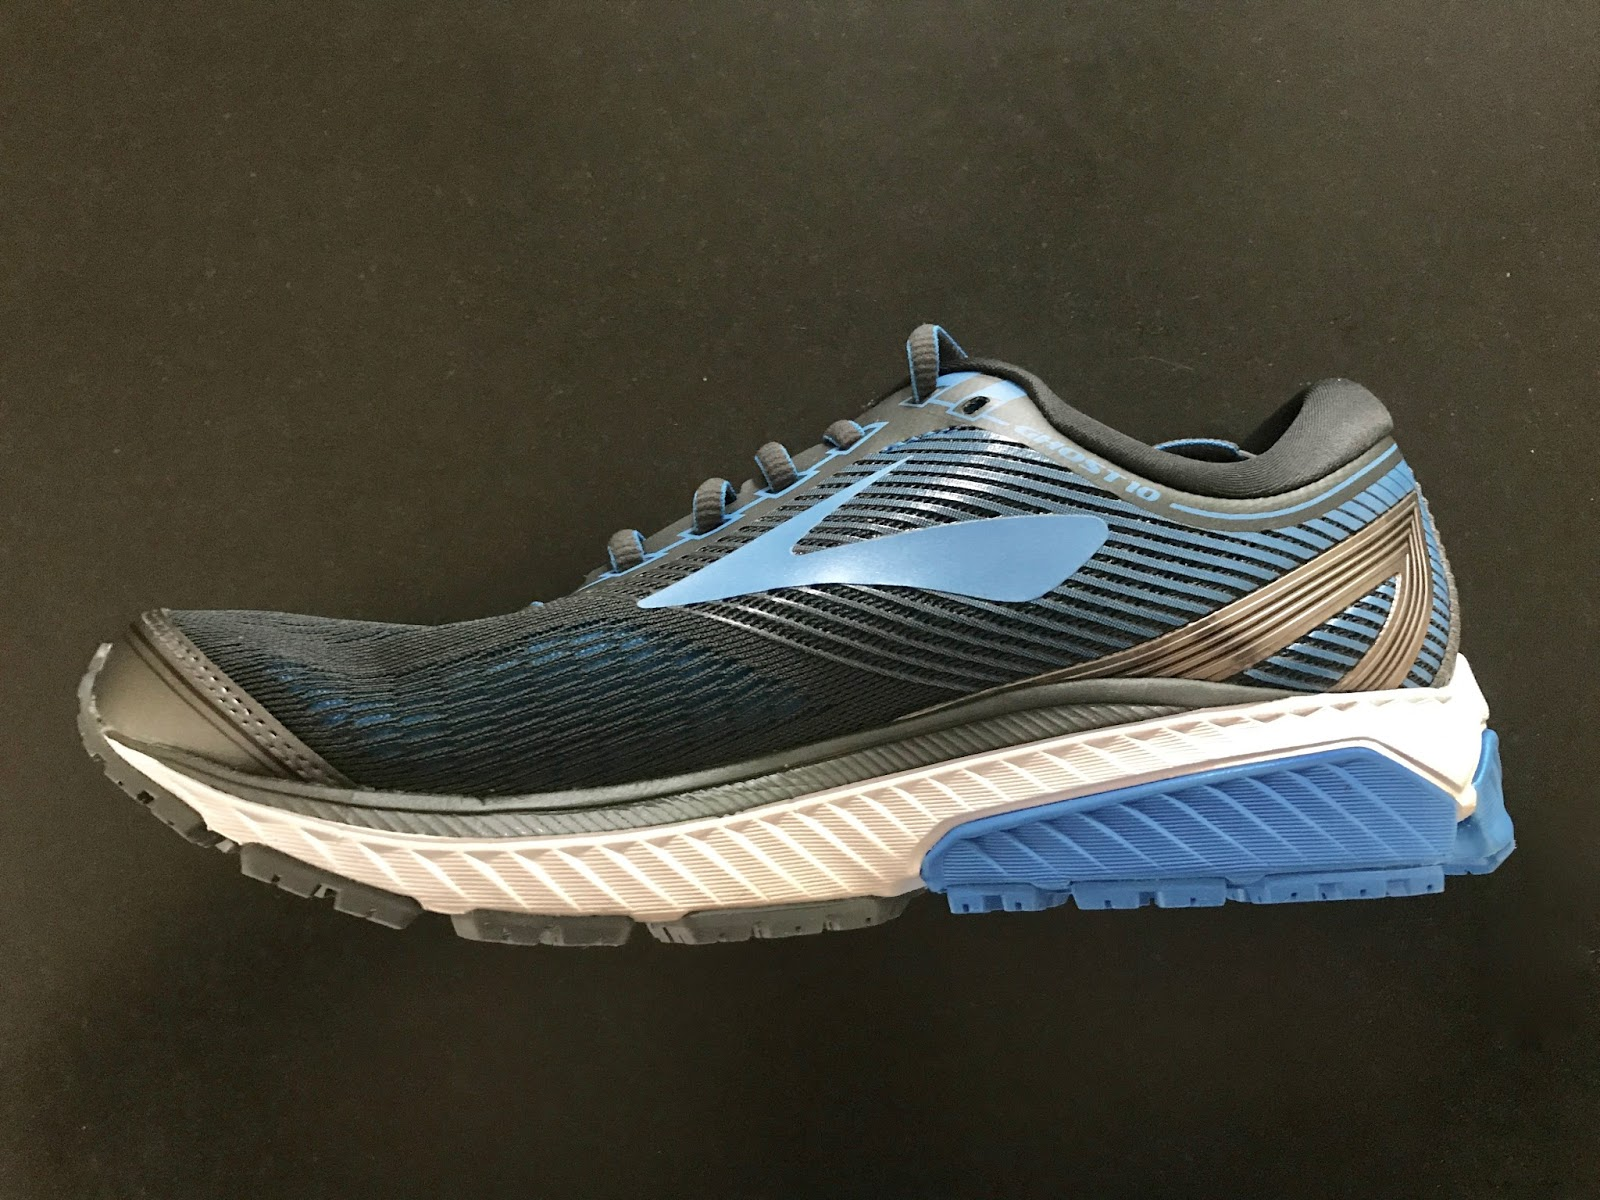 566a2f423d209 Road Trail Run  Brooks Ghost 10 Review  Superb Toe Box